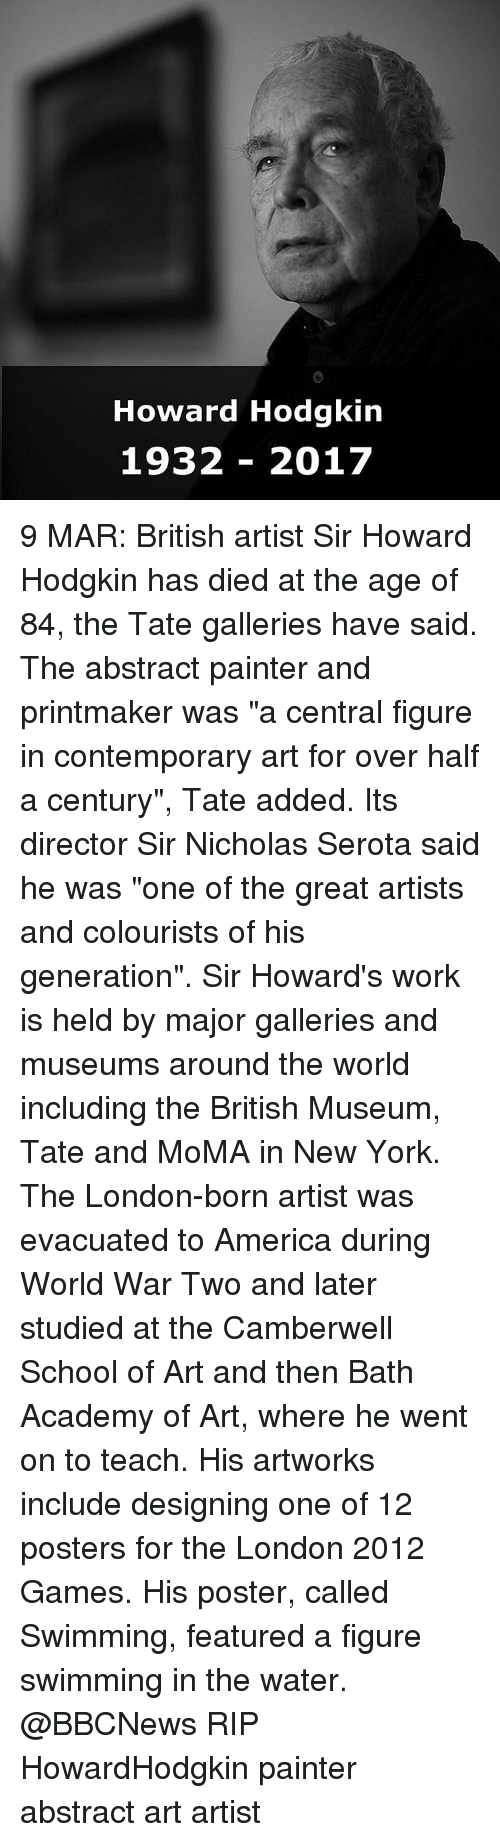 """Memes, Moma, and Abstract Art: Howard Hodgkin  1932 2017 9 MAR: British artist Sir Howard Hodgkin has died at the age of 84, the Tate galleries have said. The abstract painter and printmaker was """"a central figure in contemporary art for over half a century"""", Tate added. Its director Sir Nicholas Serota said he was """"one of the great artists and colourists of his generation"""". Sir Howard's work is held by major galleries and museums around the world including the British Museum, Tate and MoMA in New York. The London-born artist was evacuated to America during World War Two and later studied at the Camberwell School of Art and then Bath Academy of Art, where he went on to teach. His artworks include designing one of 12 posters for the London 2012 Games. His poster, called Swimming, featured a figure swimming in the water. @BBCNews RIP HowardHodgkin painter abstract art artist"""